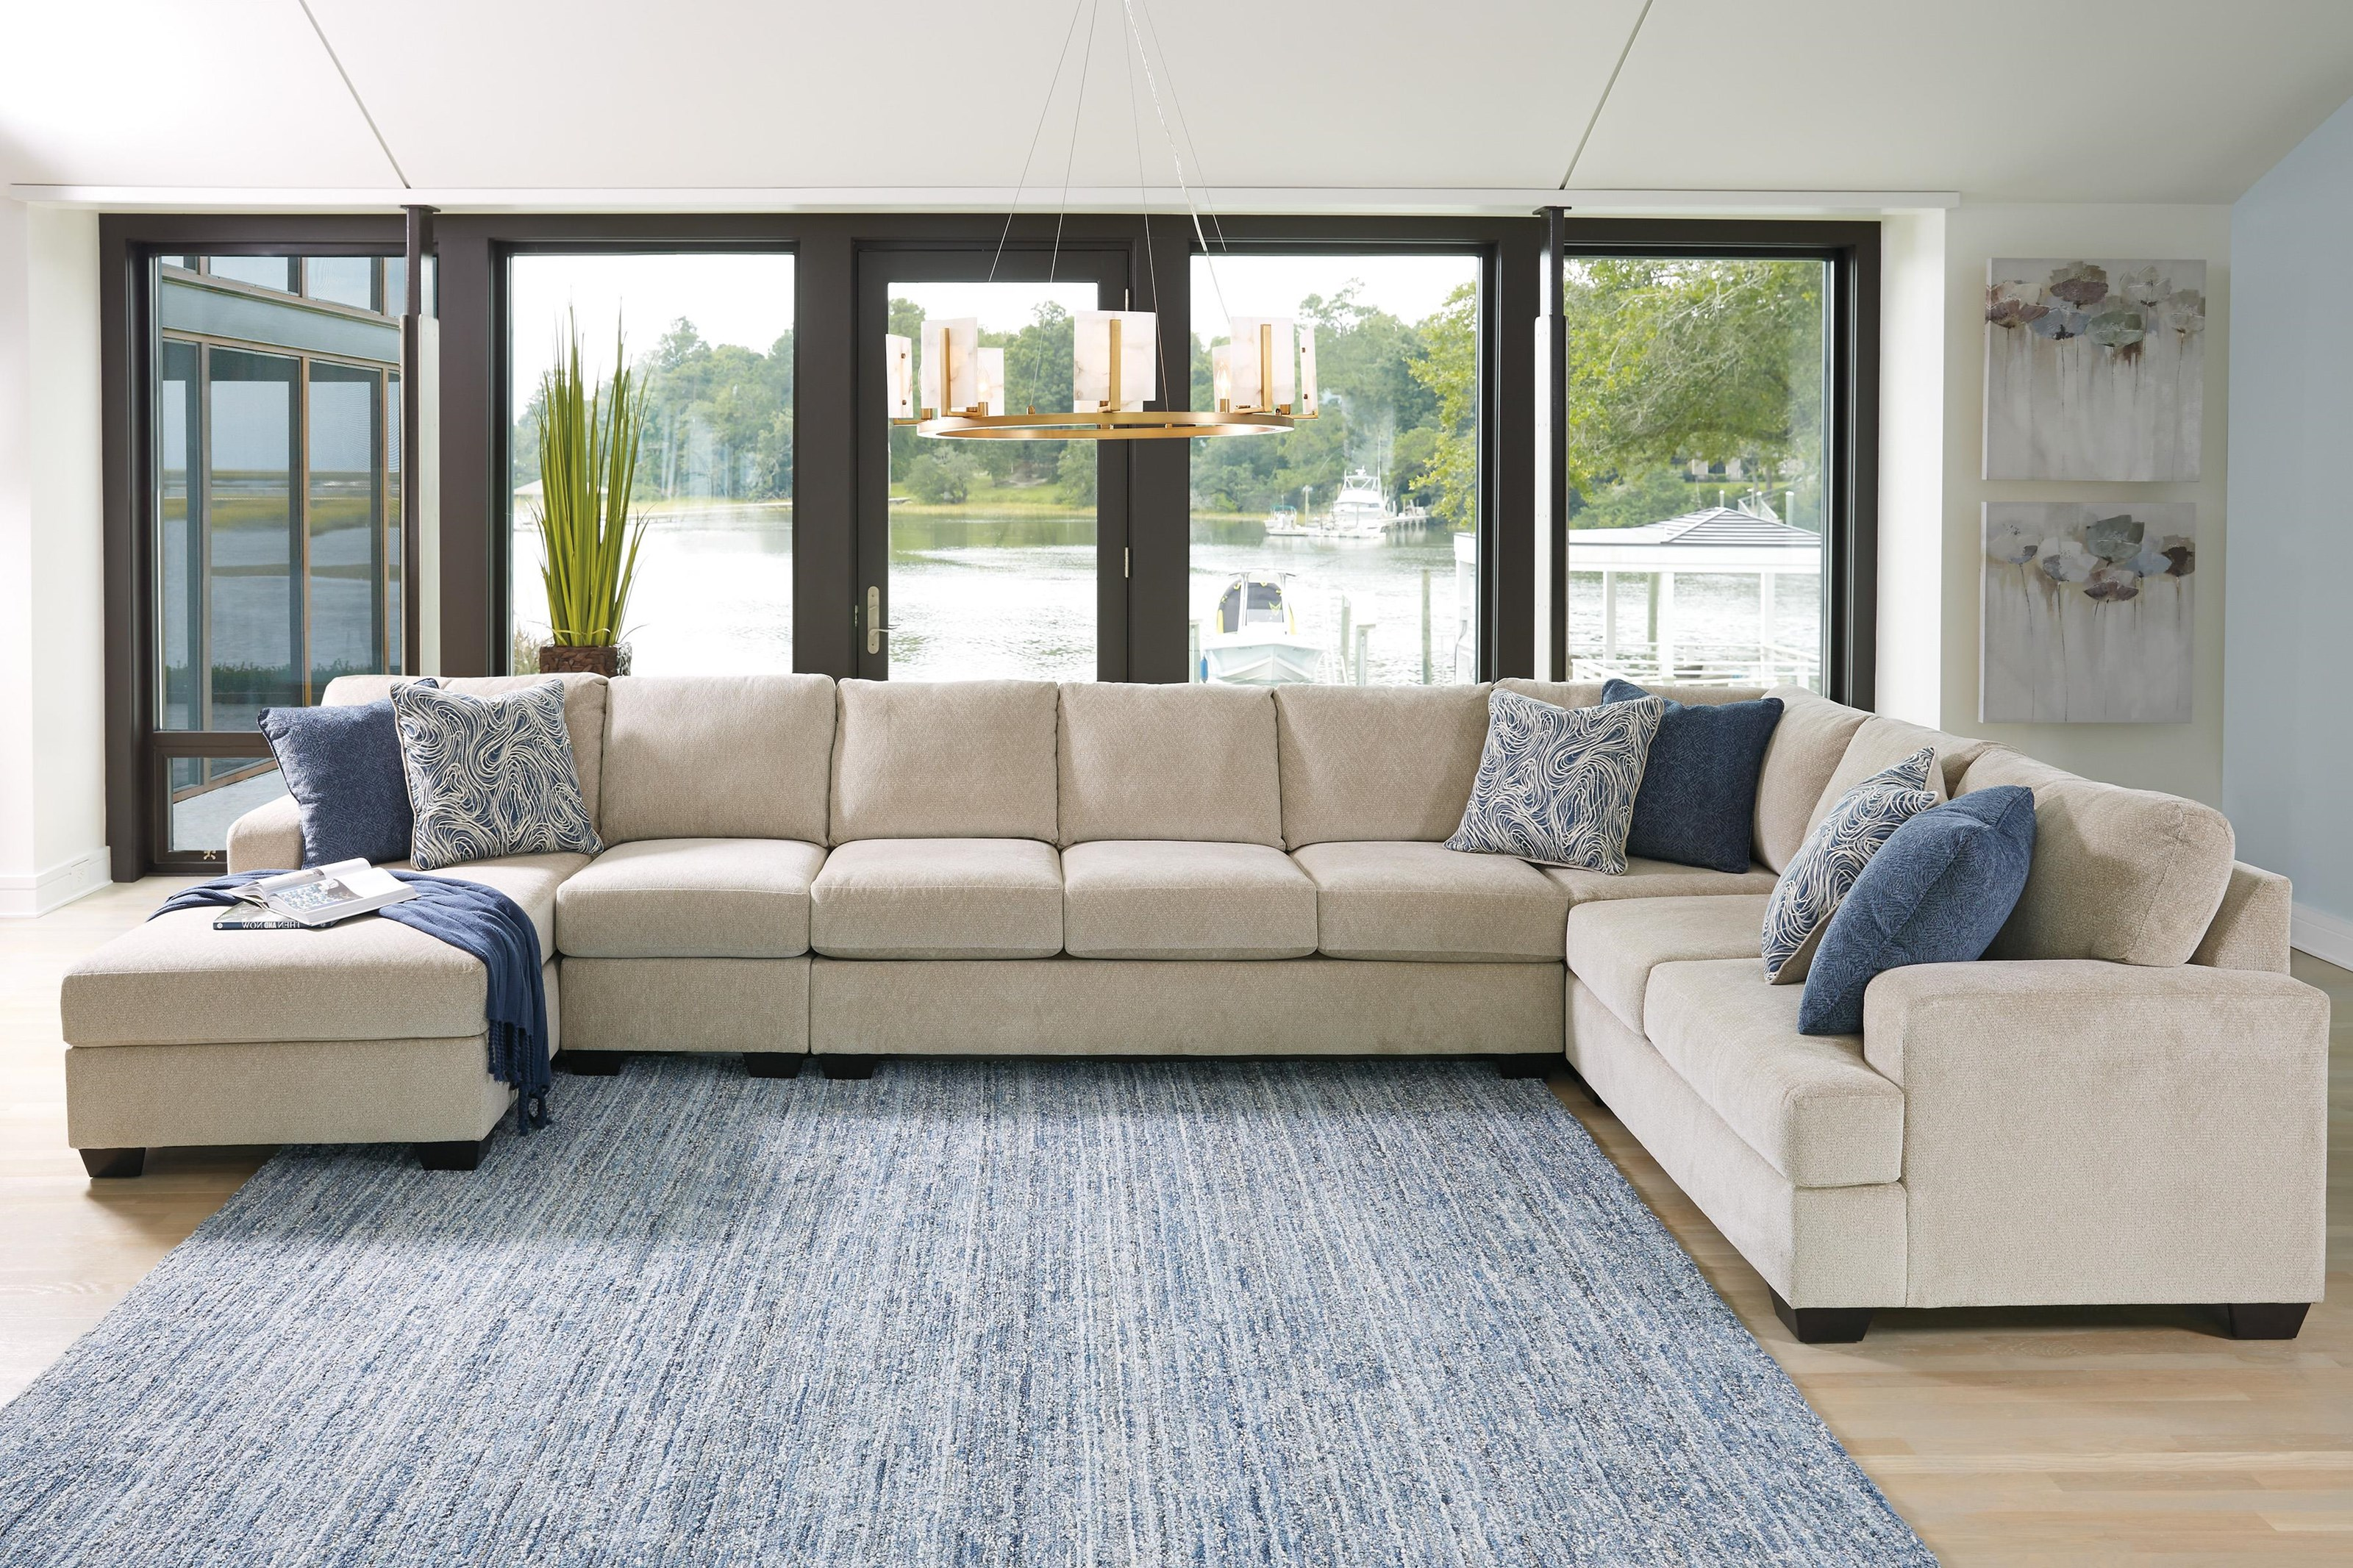 5PC Left Arm Facing Chaise Sectional